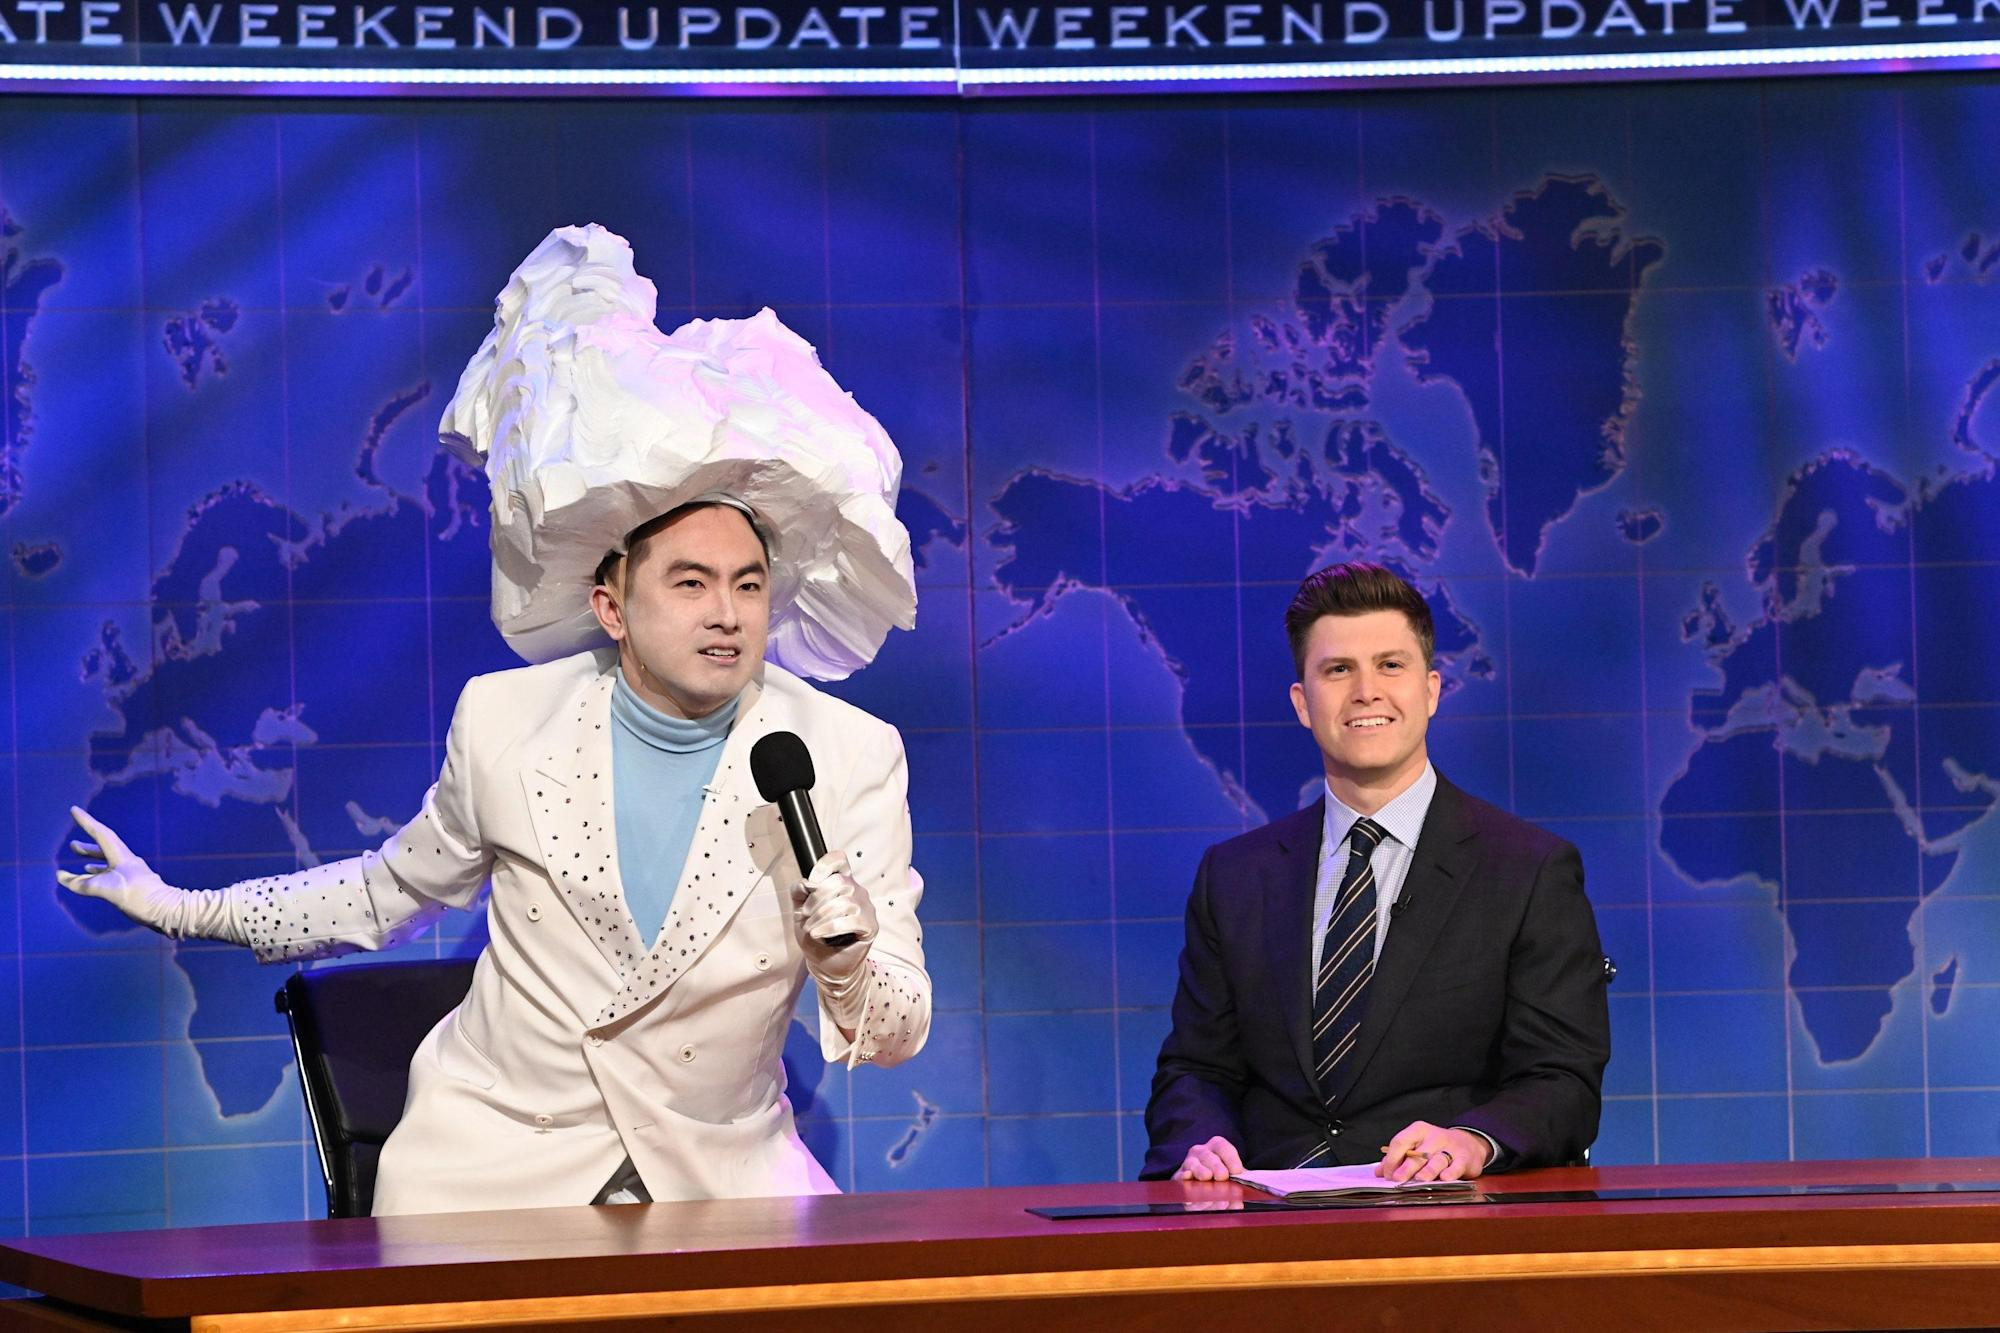 www.yahoo.com: Saturday Night Live : Twitter Is Obsessed With Bowen Yang's Titanic Sketch